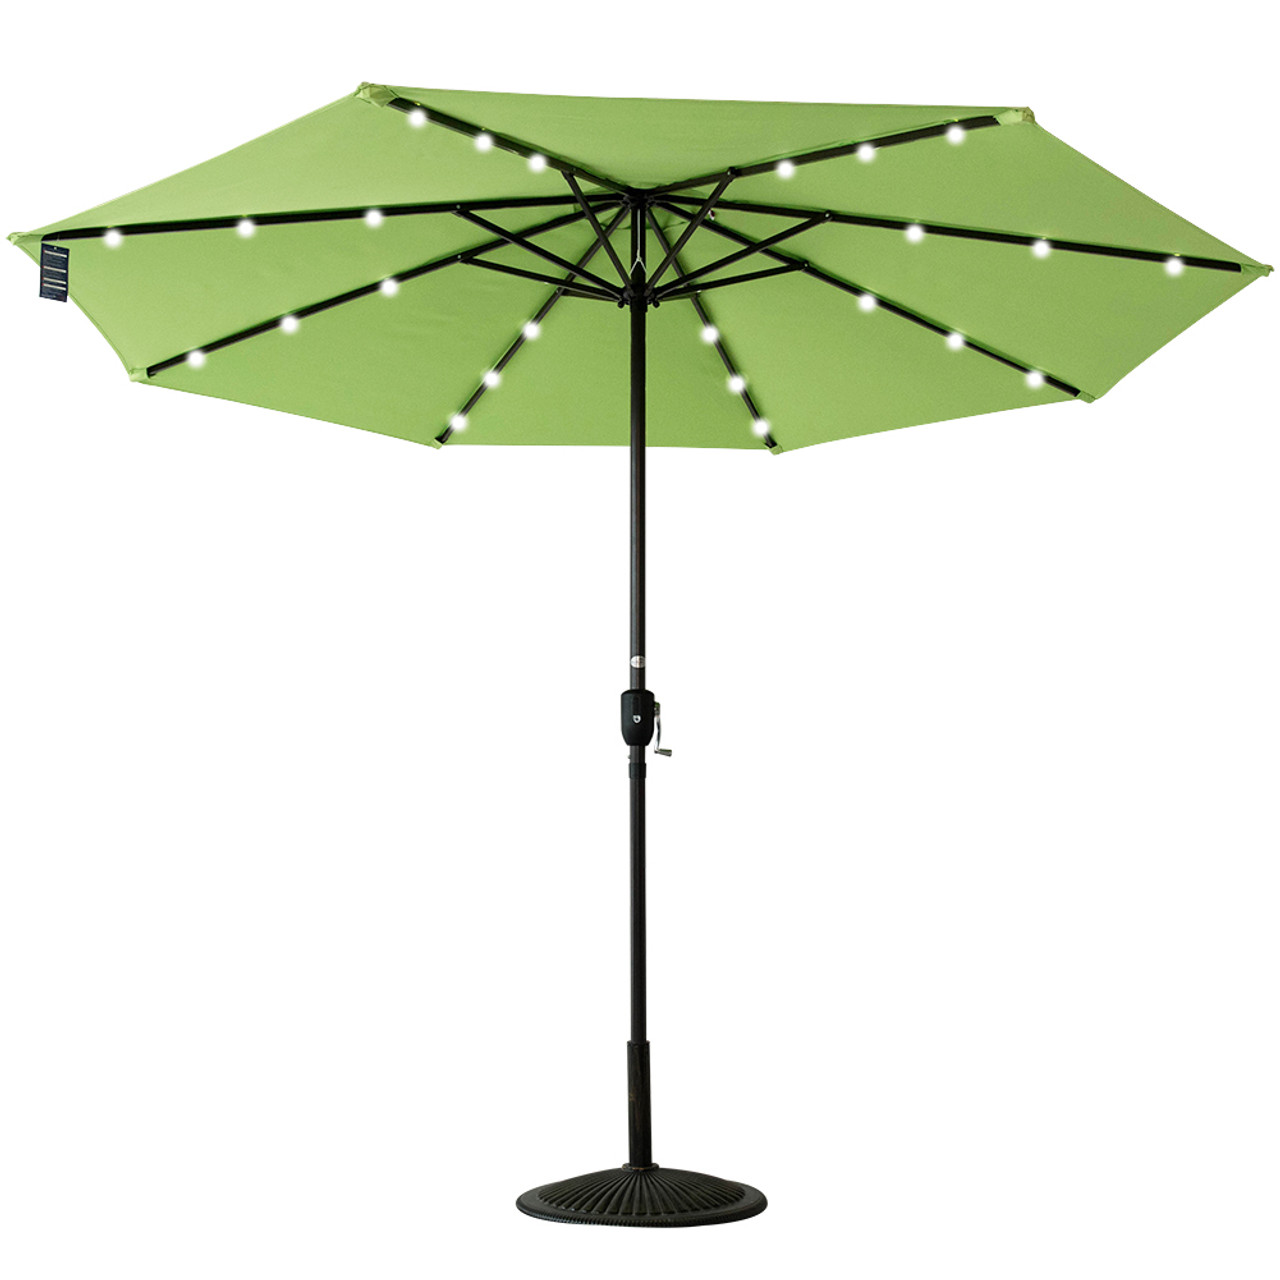 Solar Powered 24 LED Lighted Outdoor Patio Umbrella With Crank,10Feet,  Recharge For Phone